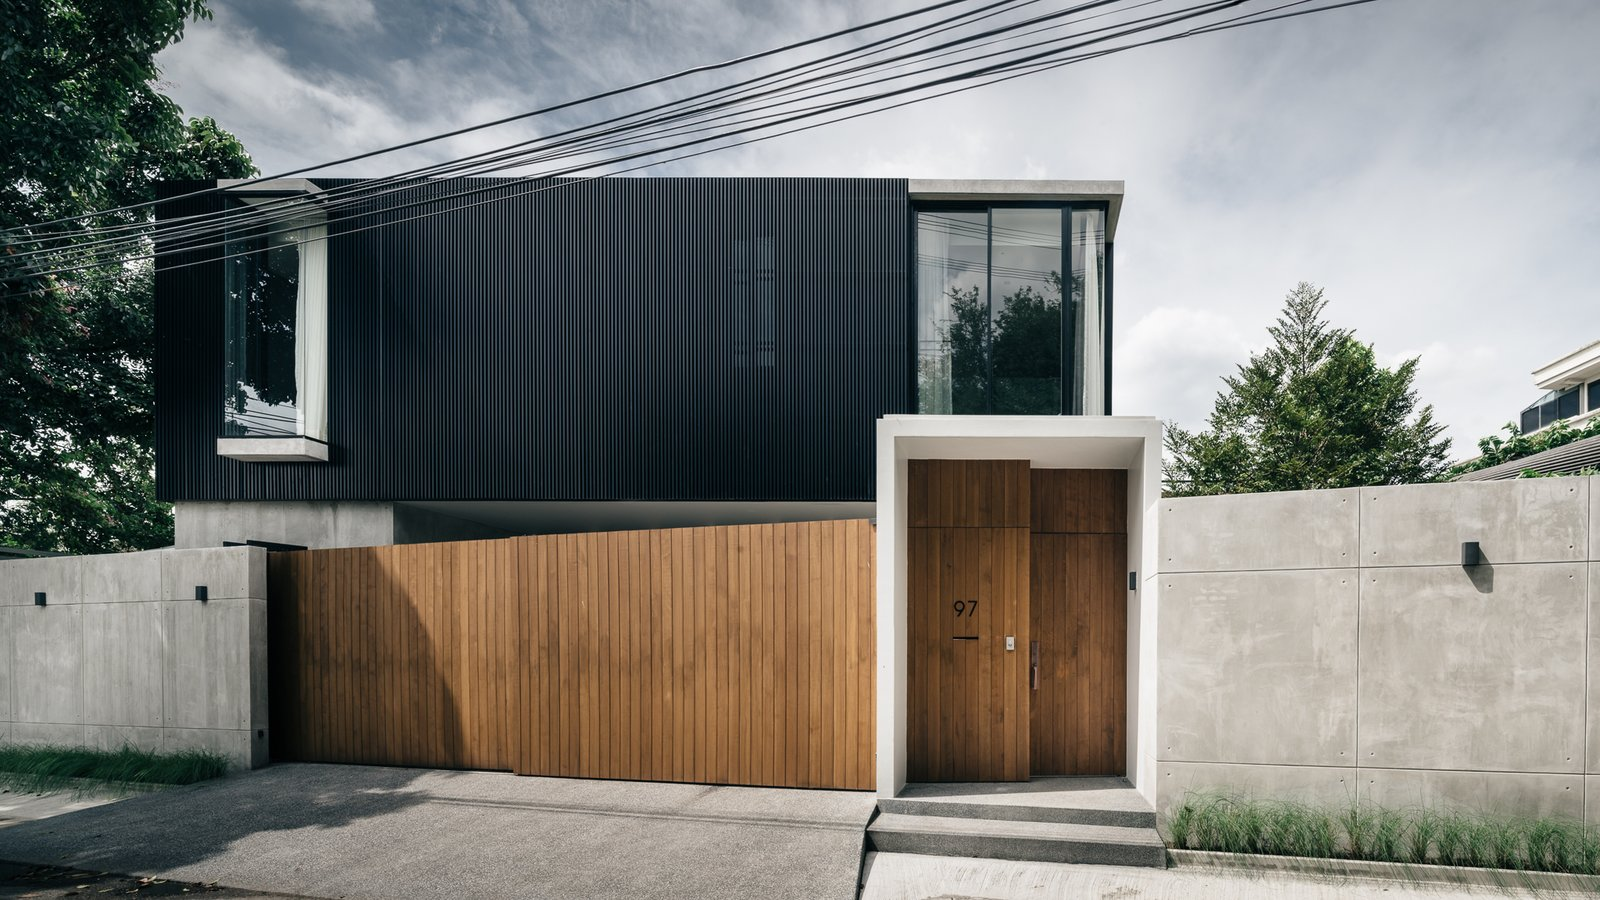 Doors, Swing, Metal, Exterior, and Wood facade of the house   Doors Swing Metal Wood Photos from bAAn